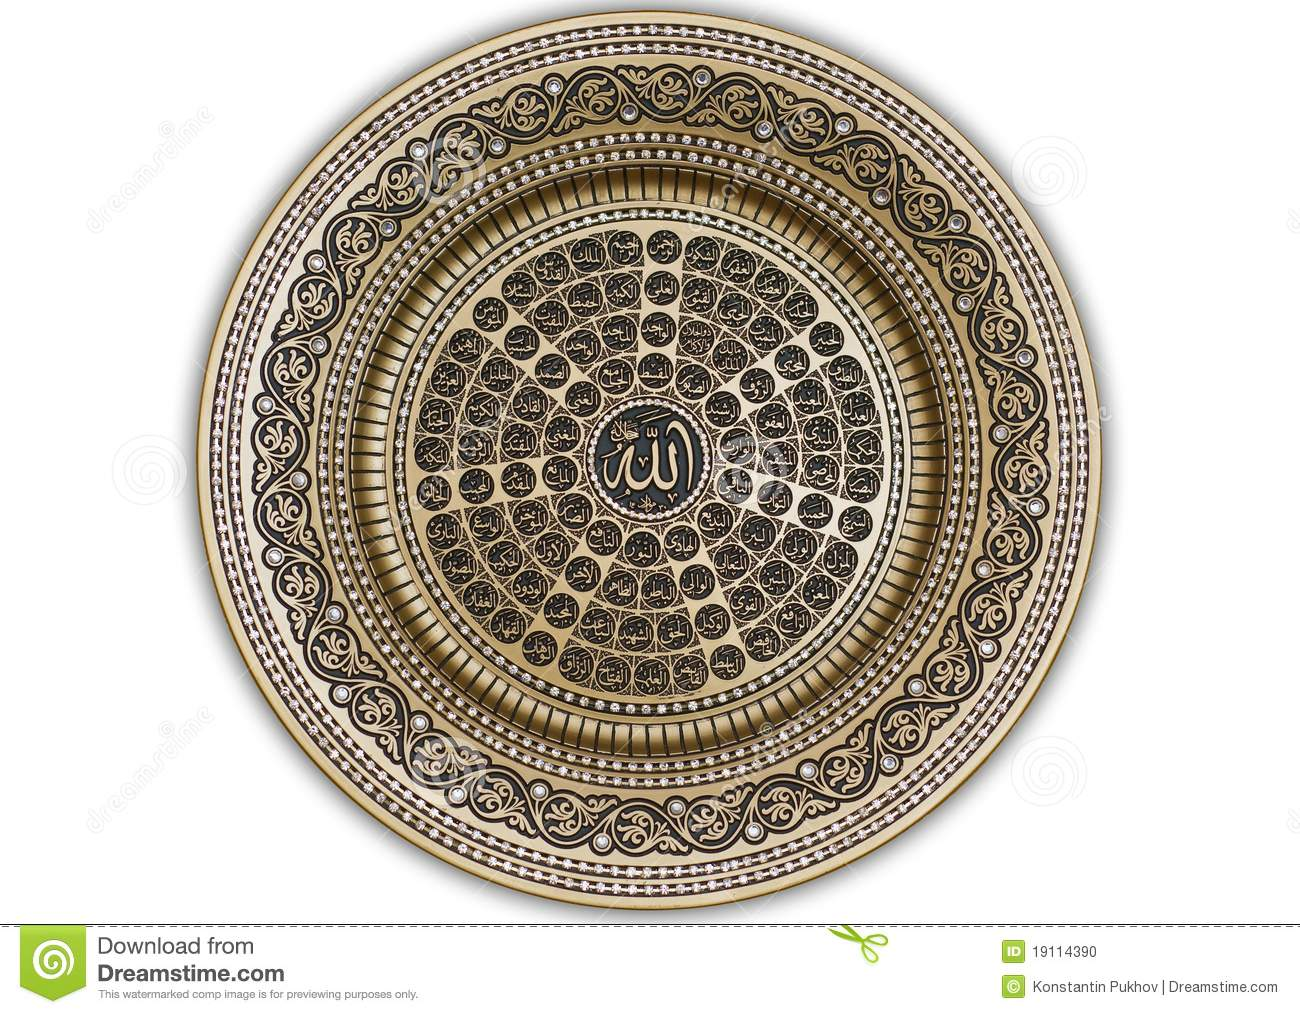 99 names of the Allah stock photo  Image of ancient, letters - 19114390